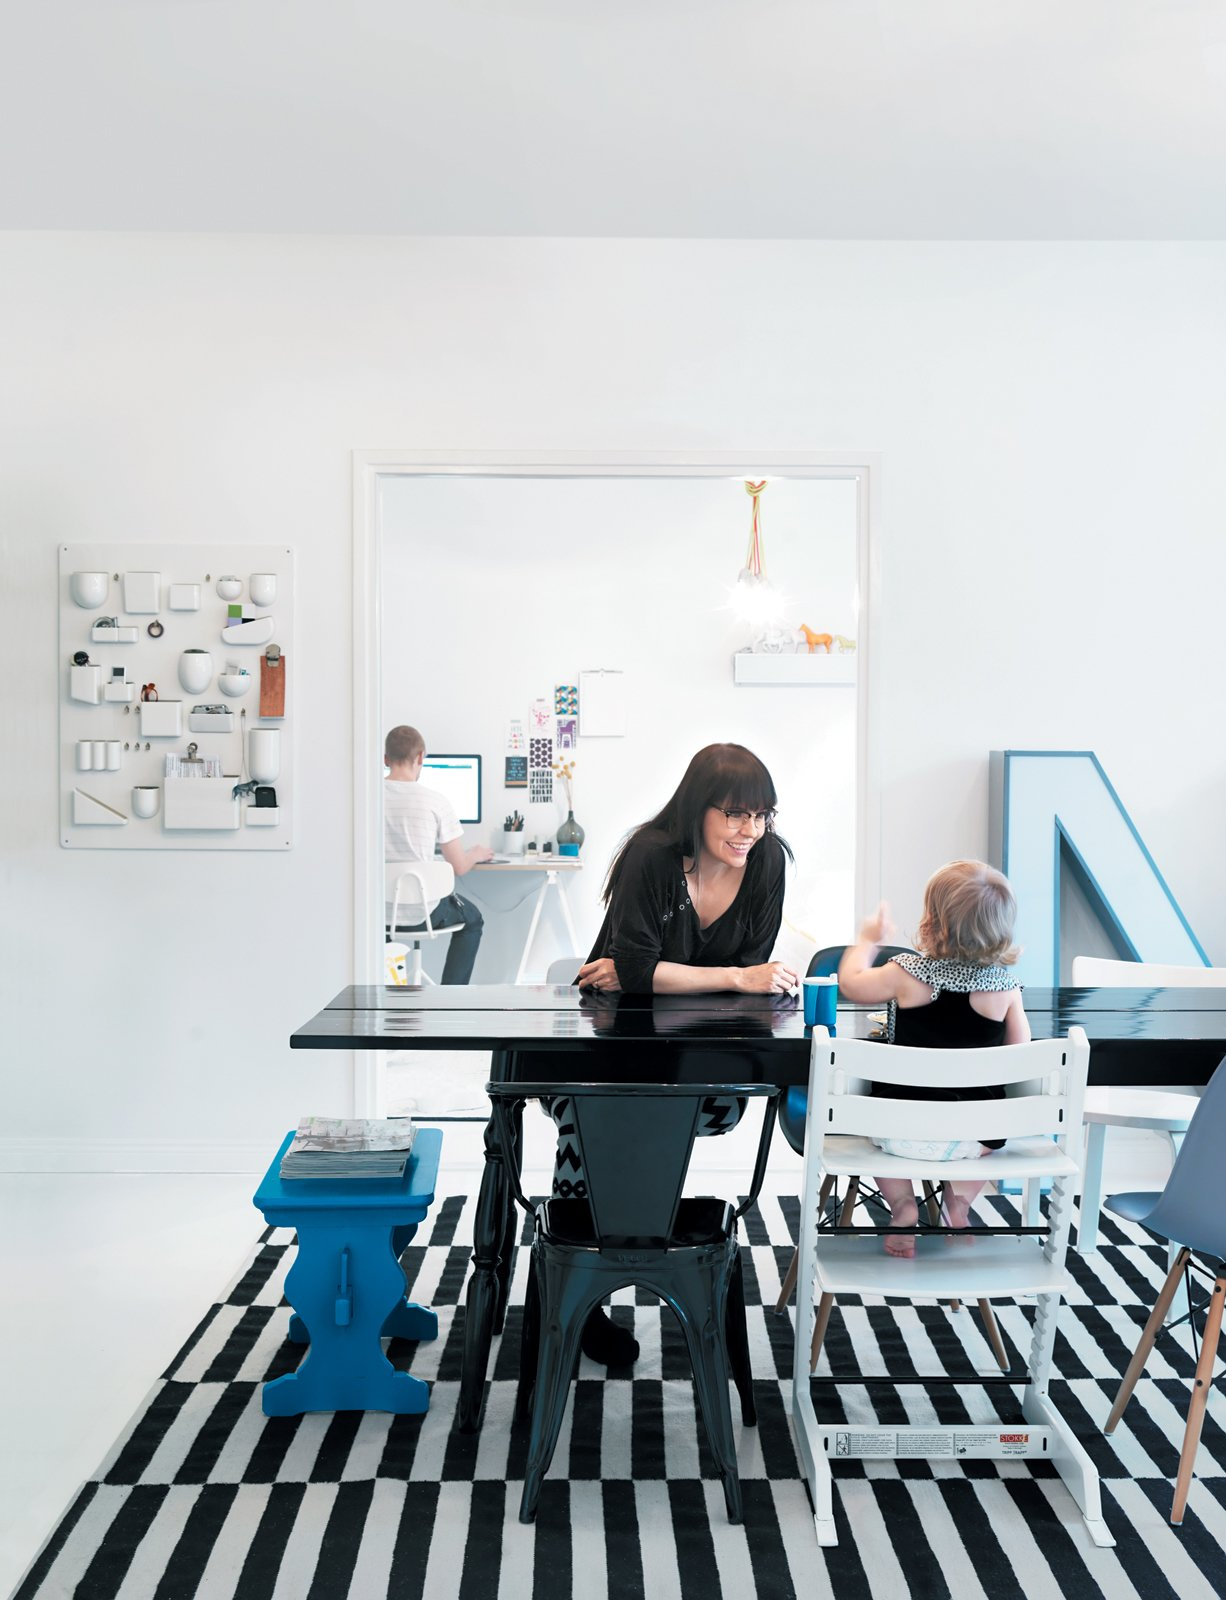 """Susanna Vento, pictured here with her daughter Varpu, is a Helsinki-based editor, stylist, and interior designer. Asked about her design approach in her own apartment, she says: """"As an interior designer I choose new designs for my clients, but for my own home, I tend to prefer crafty or old stuff. If I buy something, I want to buy only things that stand the test of time. But even better is to buy nothing at all and do-it-yourself!"""" Tagged: Dining Room, Chair, and Table.  Photo 1 of 16 in Fine Finnish"""